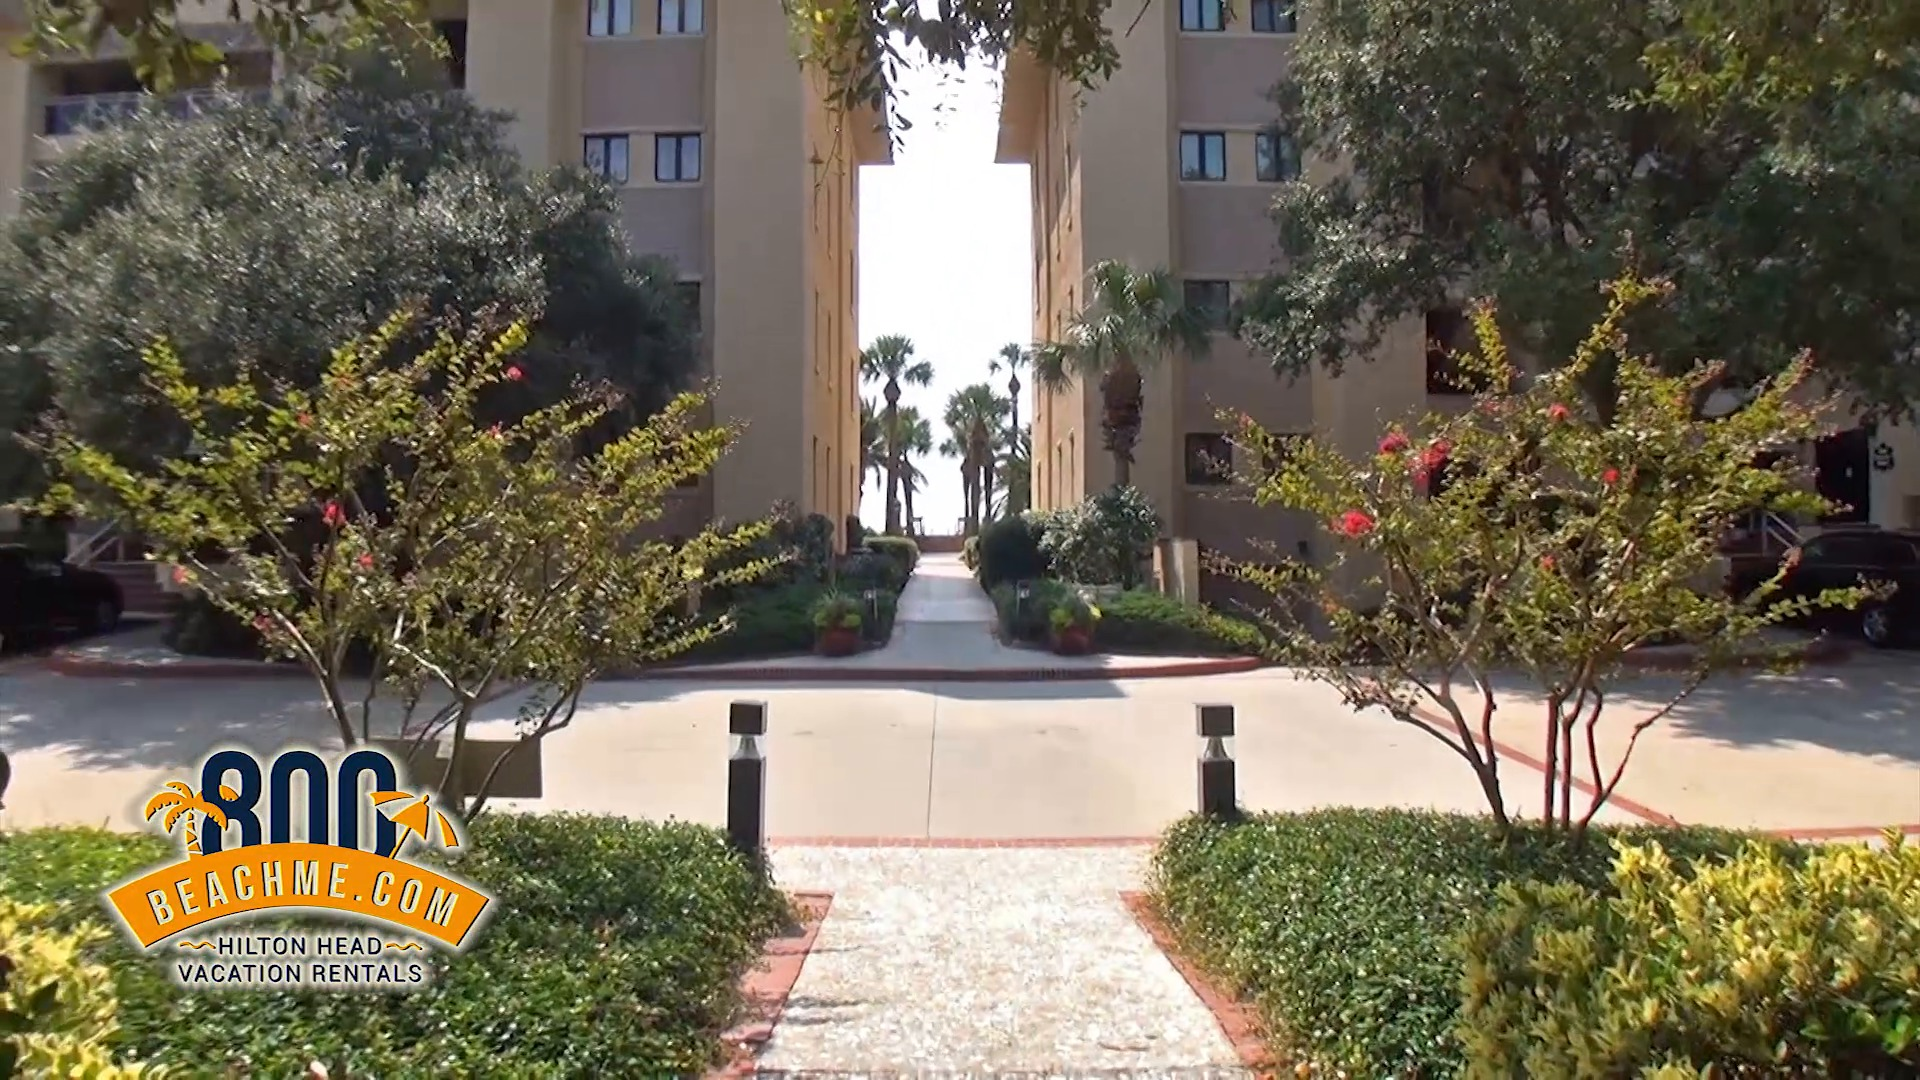 Turtle Lane Hilton Head Villas • Hilton Head Vacation Rentals